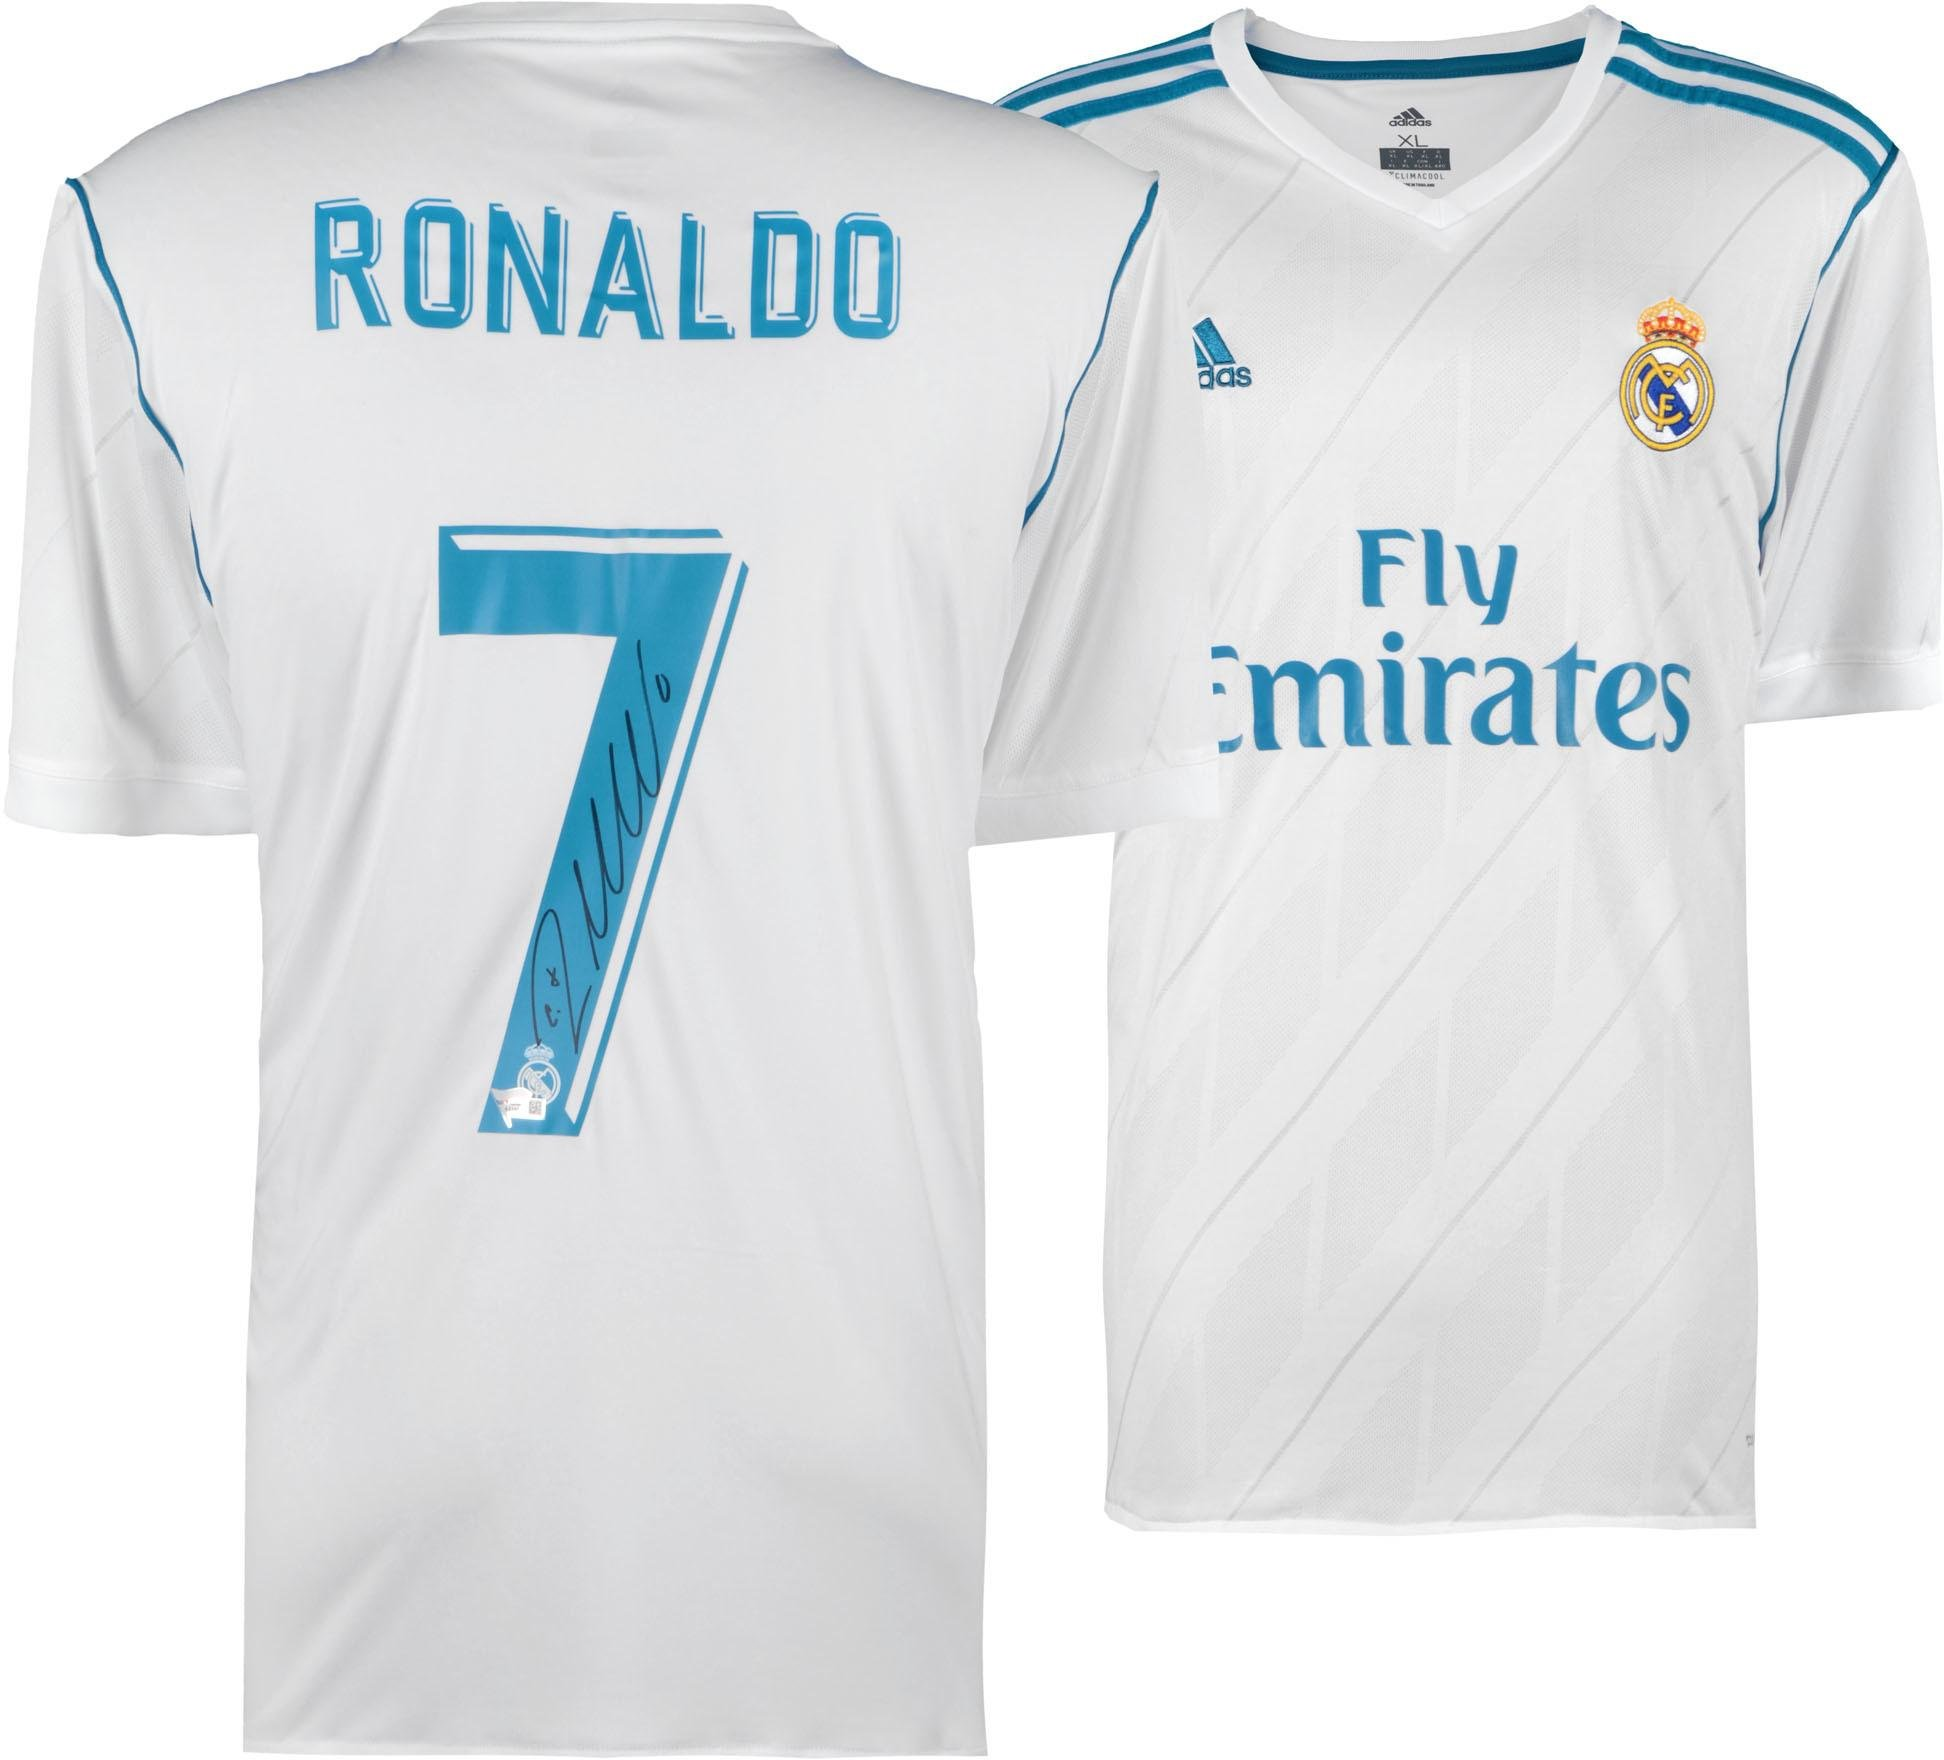 Cristiano Ronaldo Real Madrid Autographed 2017 2018 Jersey Fanatics Authentic Certified Autographed Soccer Jerseys